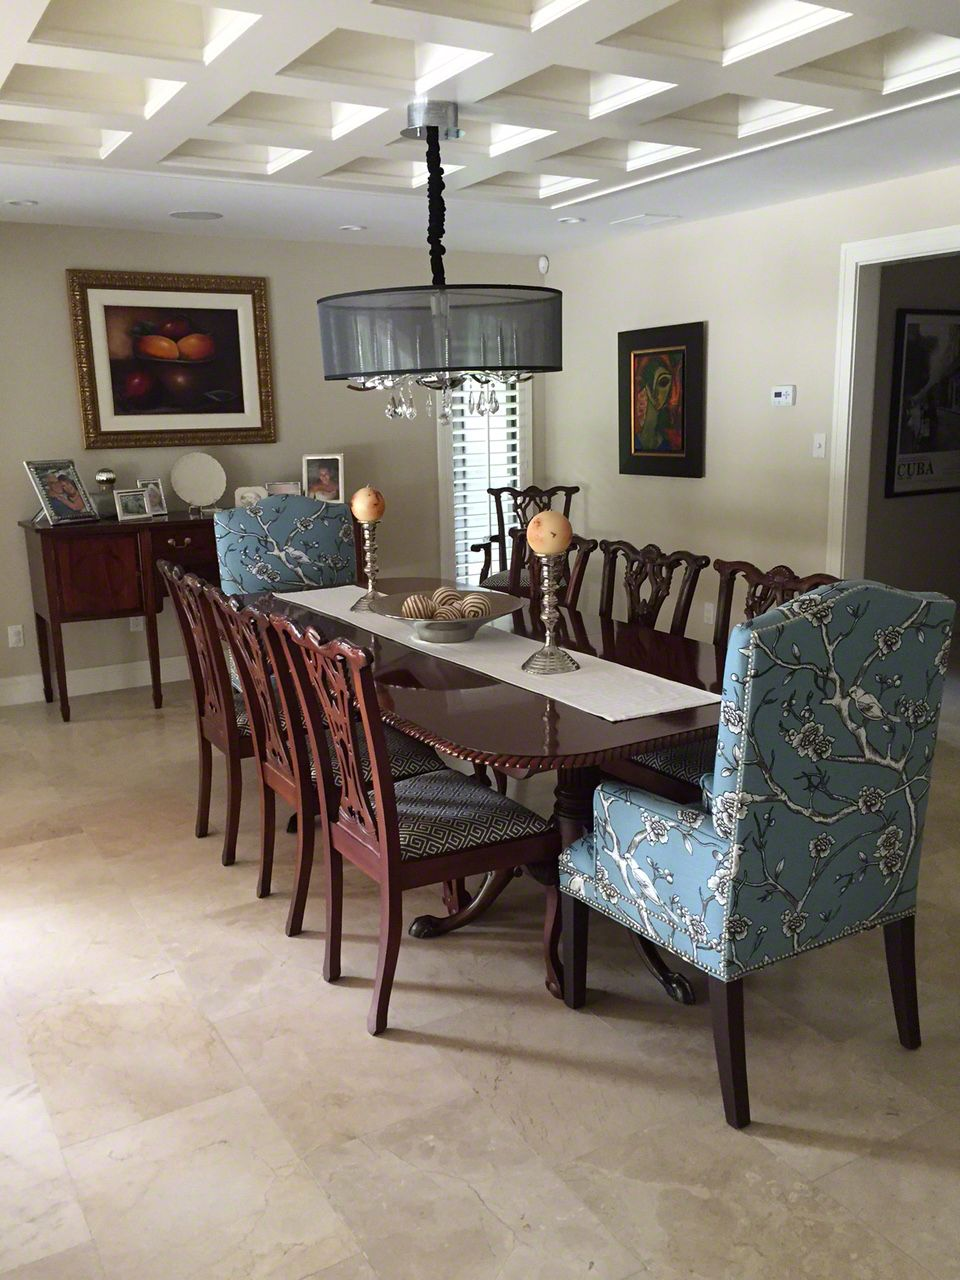 Crema Marfil Marble Flooring For The Dining Room Dining Room Floor